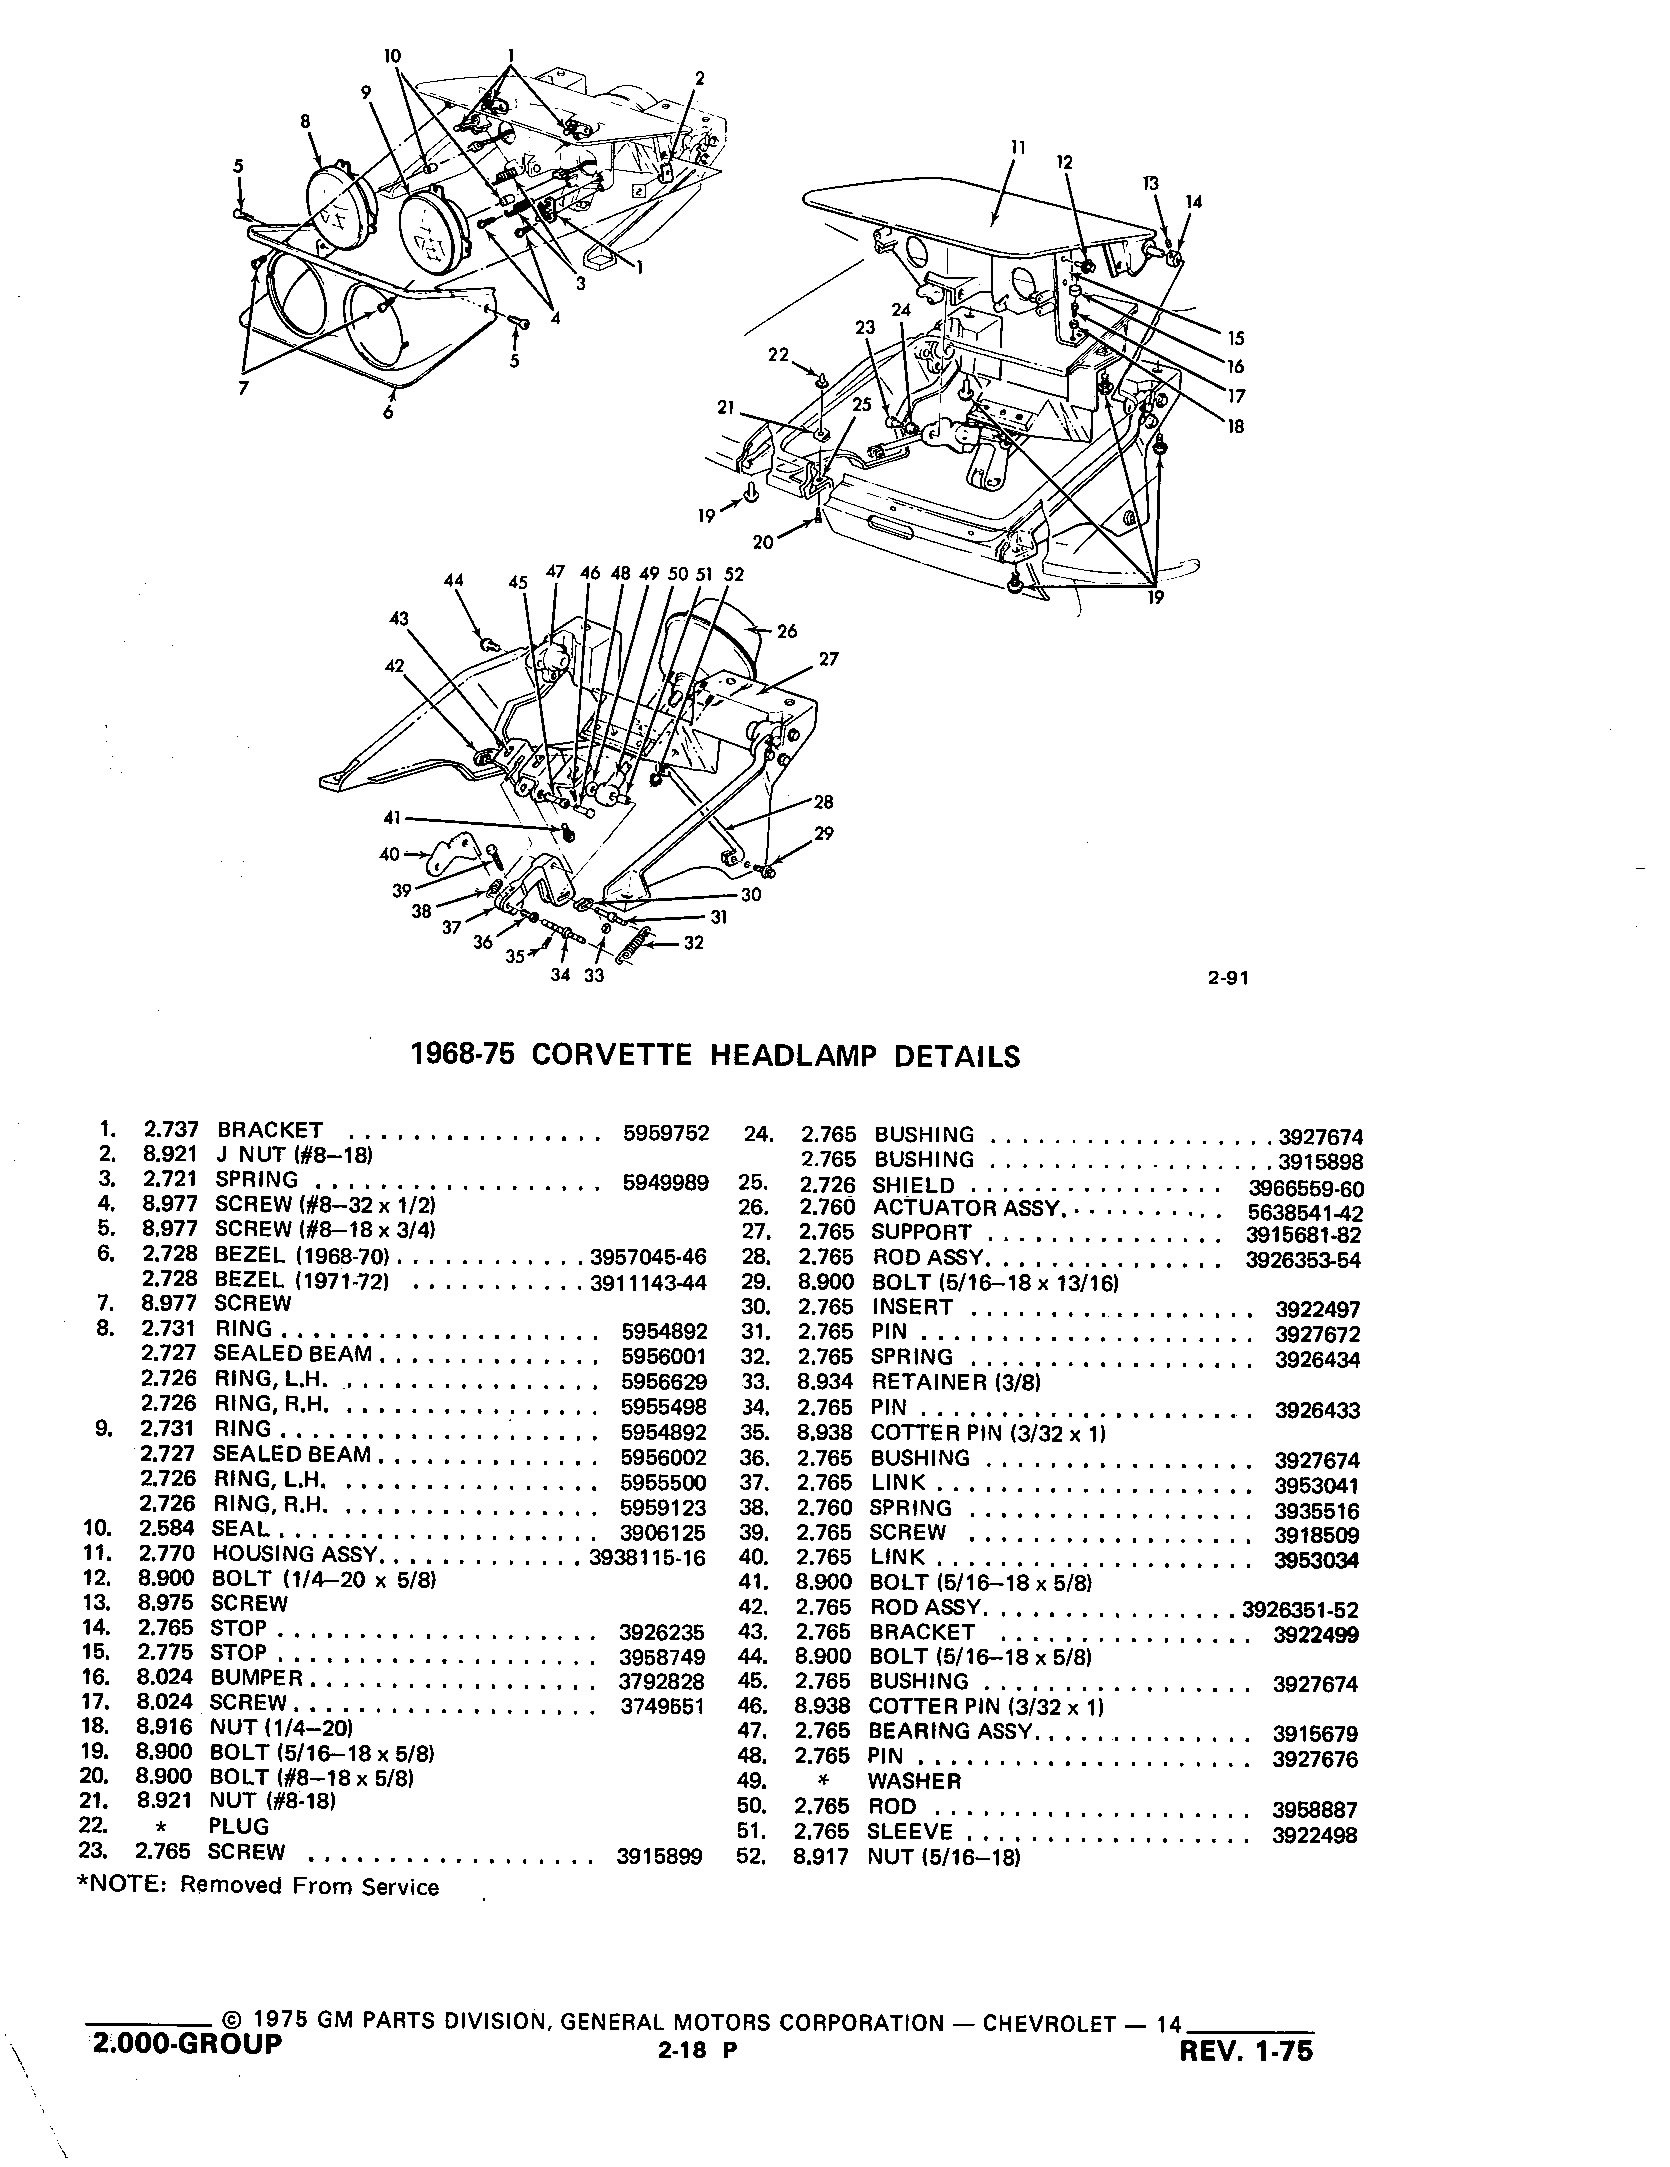 P 0900c1528007dbe6 also 1965 Corvette Engine Options likewise Pt Cruiser Neutral Safety Switch Wiring Diagram moreover Category view in addition P 0900c1528008200e. on 1973 chevrolet corvette stingray